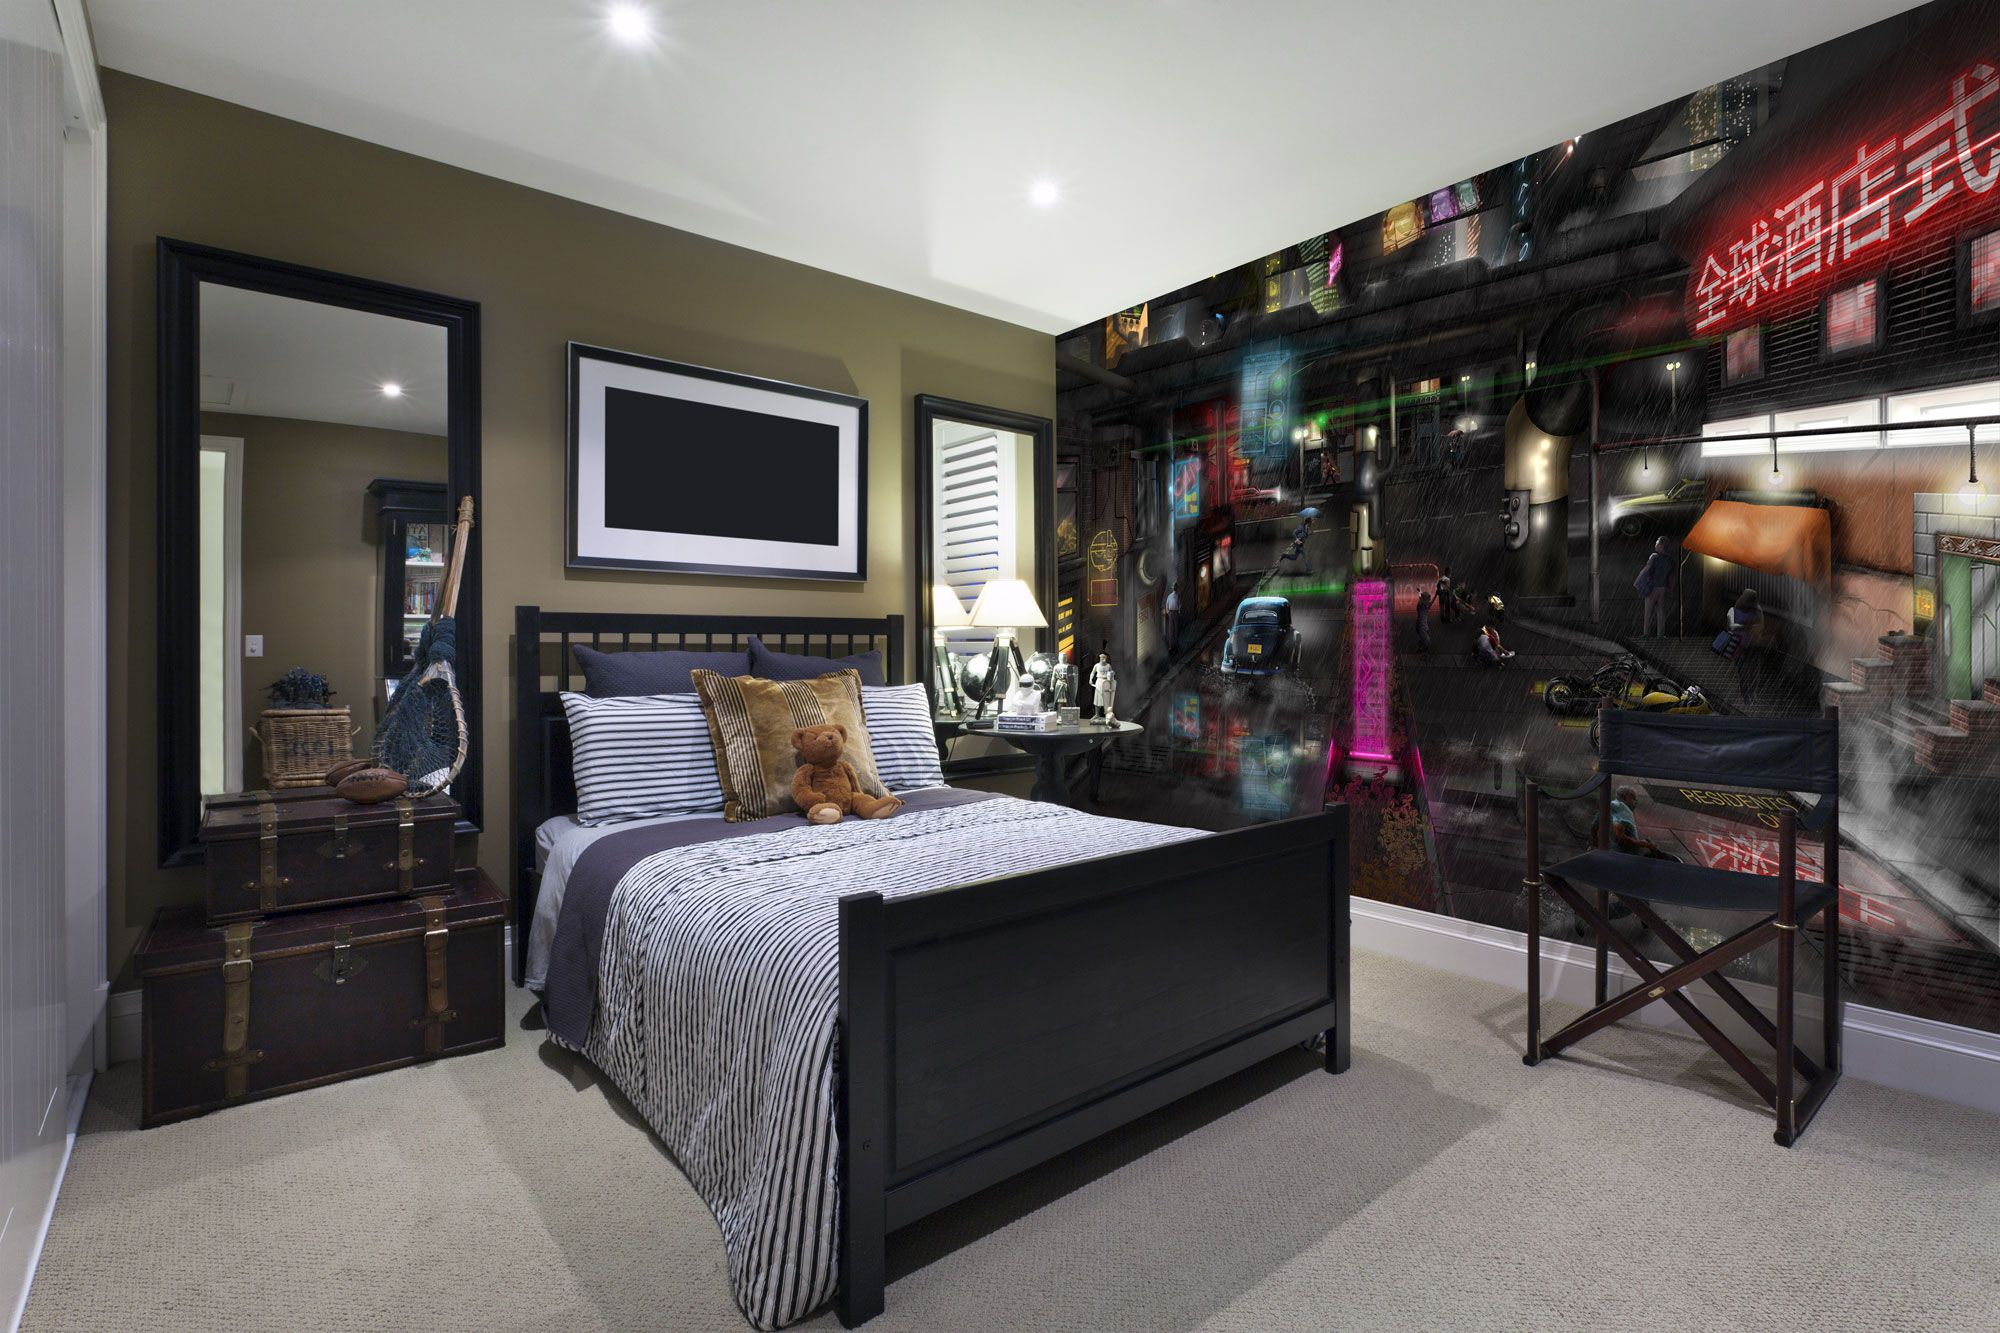 Best Pin On Ideas For Man Caves And Bachelor Pads 400 x 300